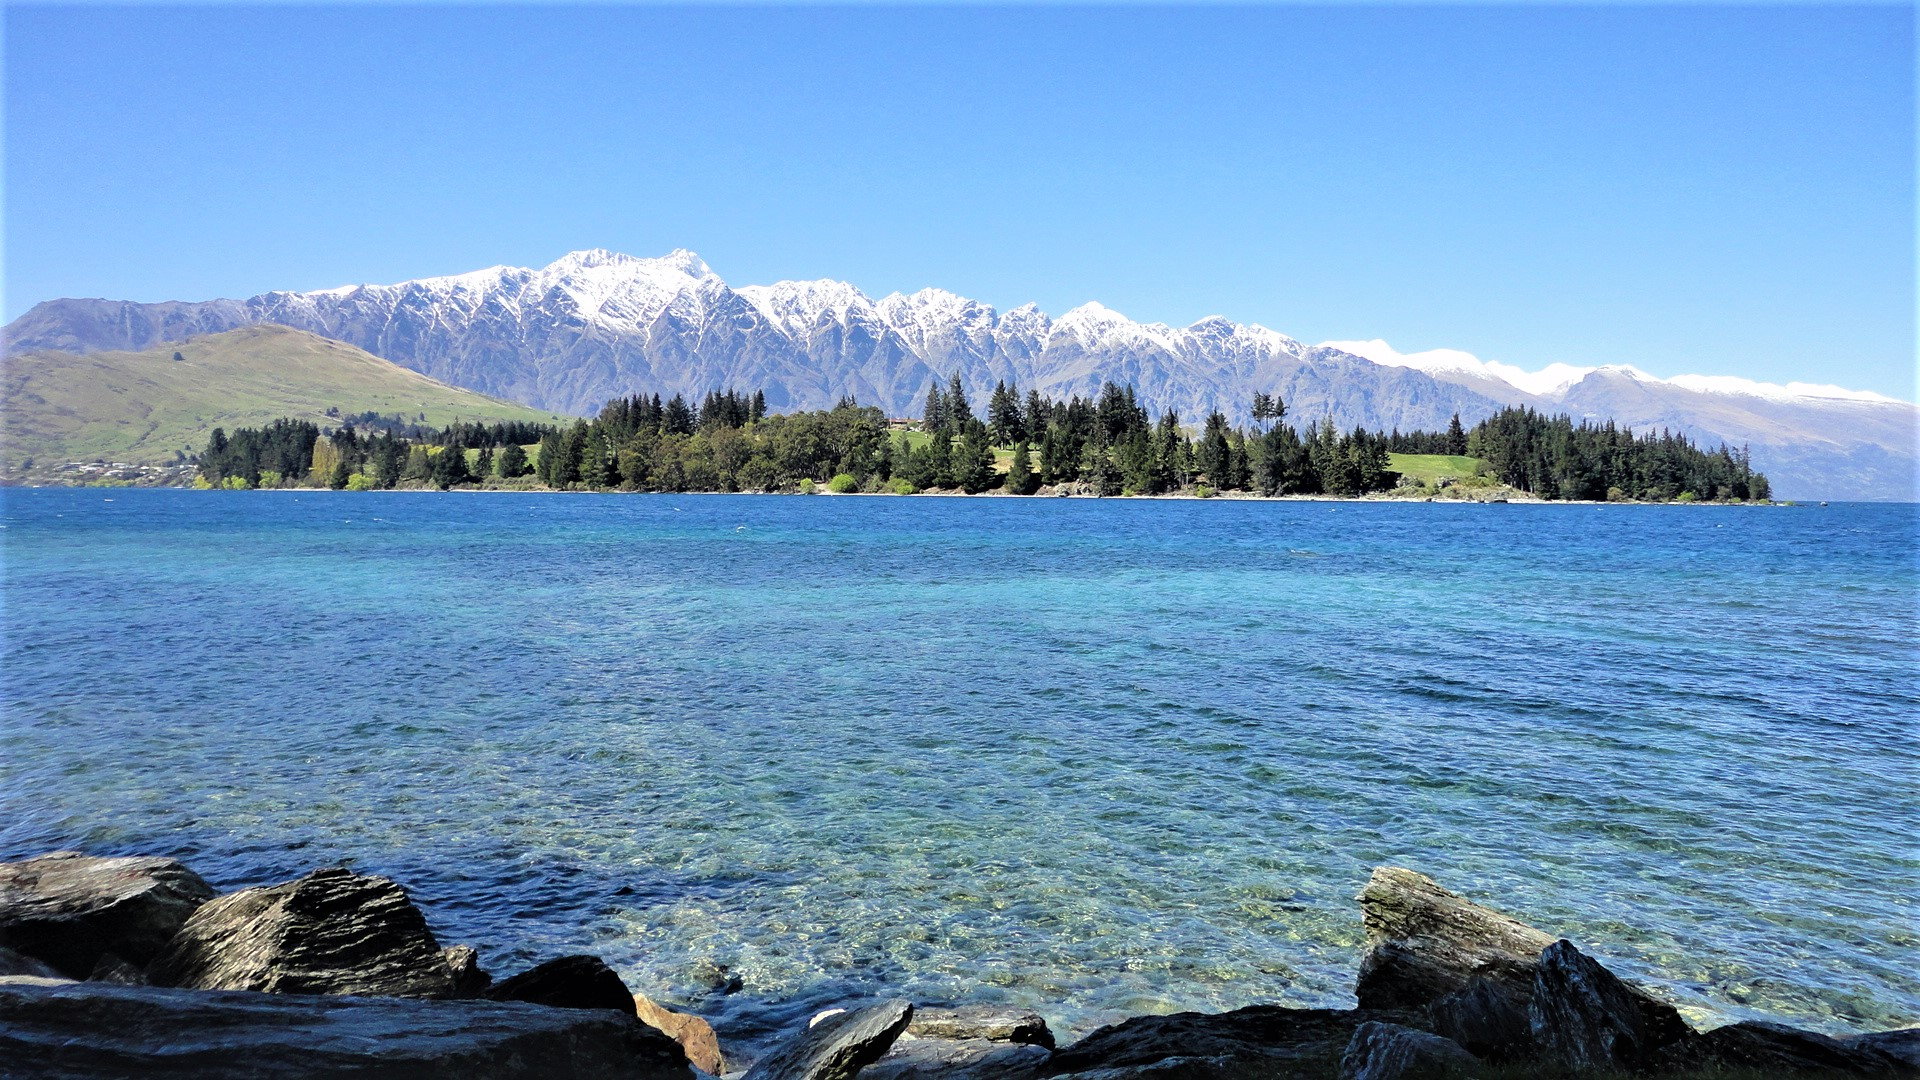 Stunning nature that no editing is needed when taking a photo in Queenstown, New Zealand by Lena Pfitzner